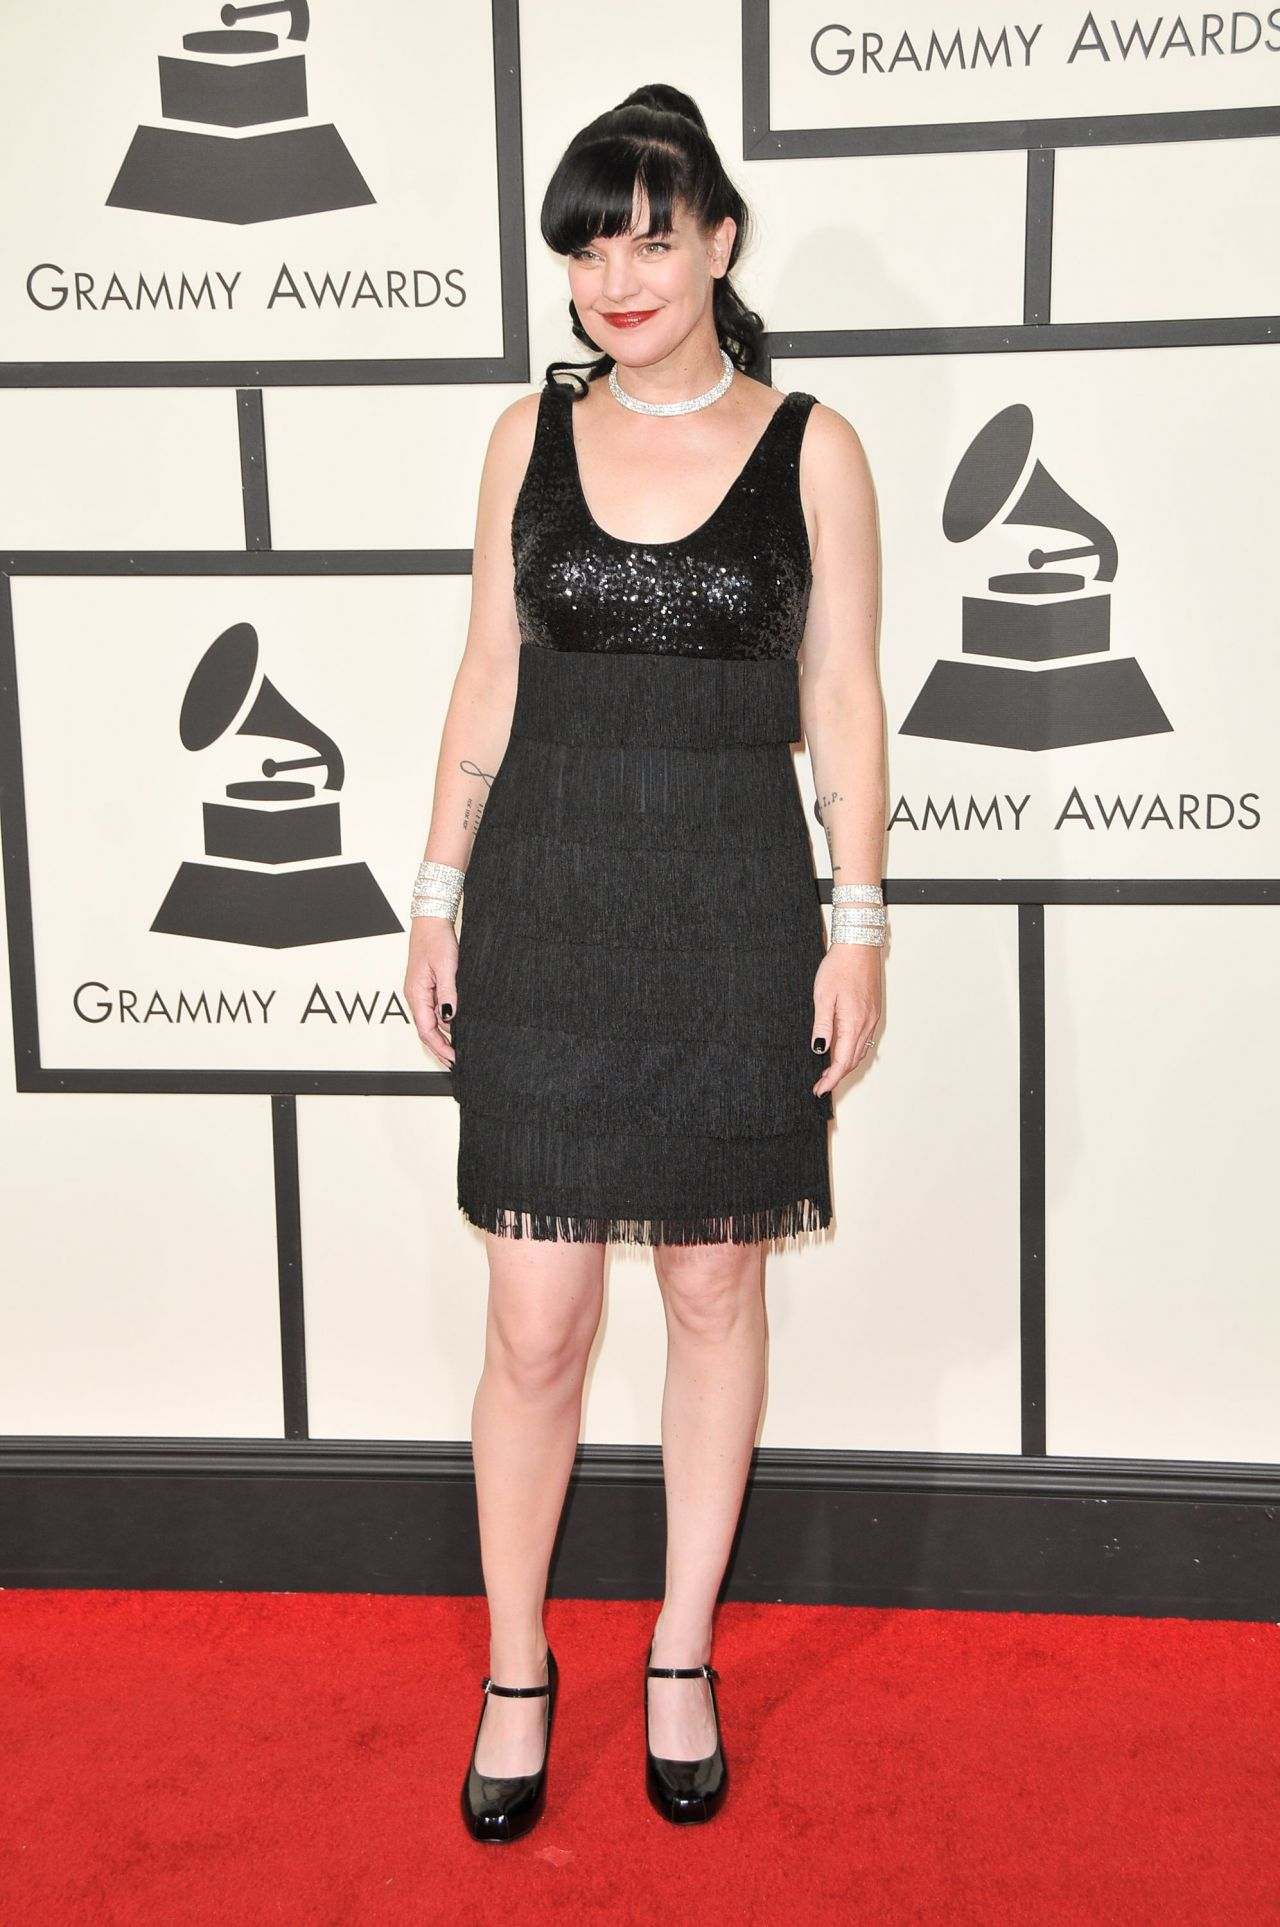 pauley-perrette-2016-grammy-awards-in-los-angeles-ca-2